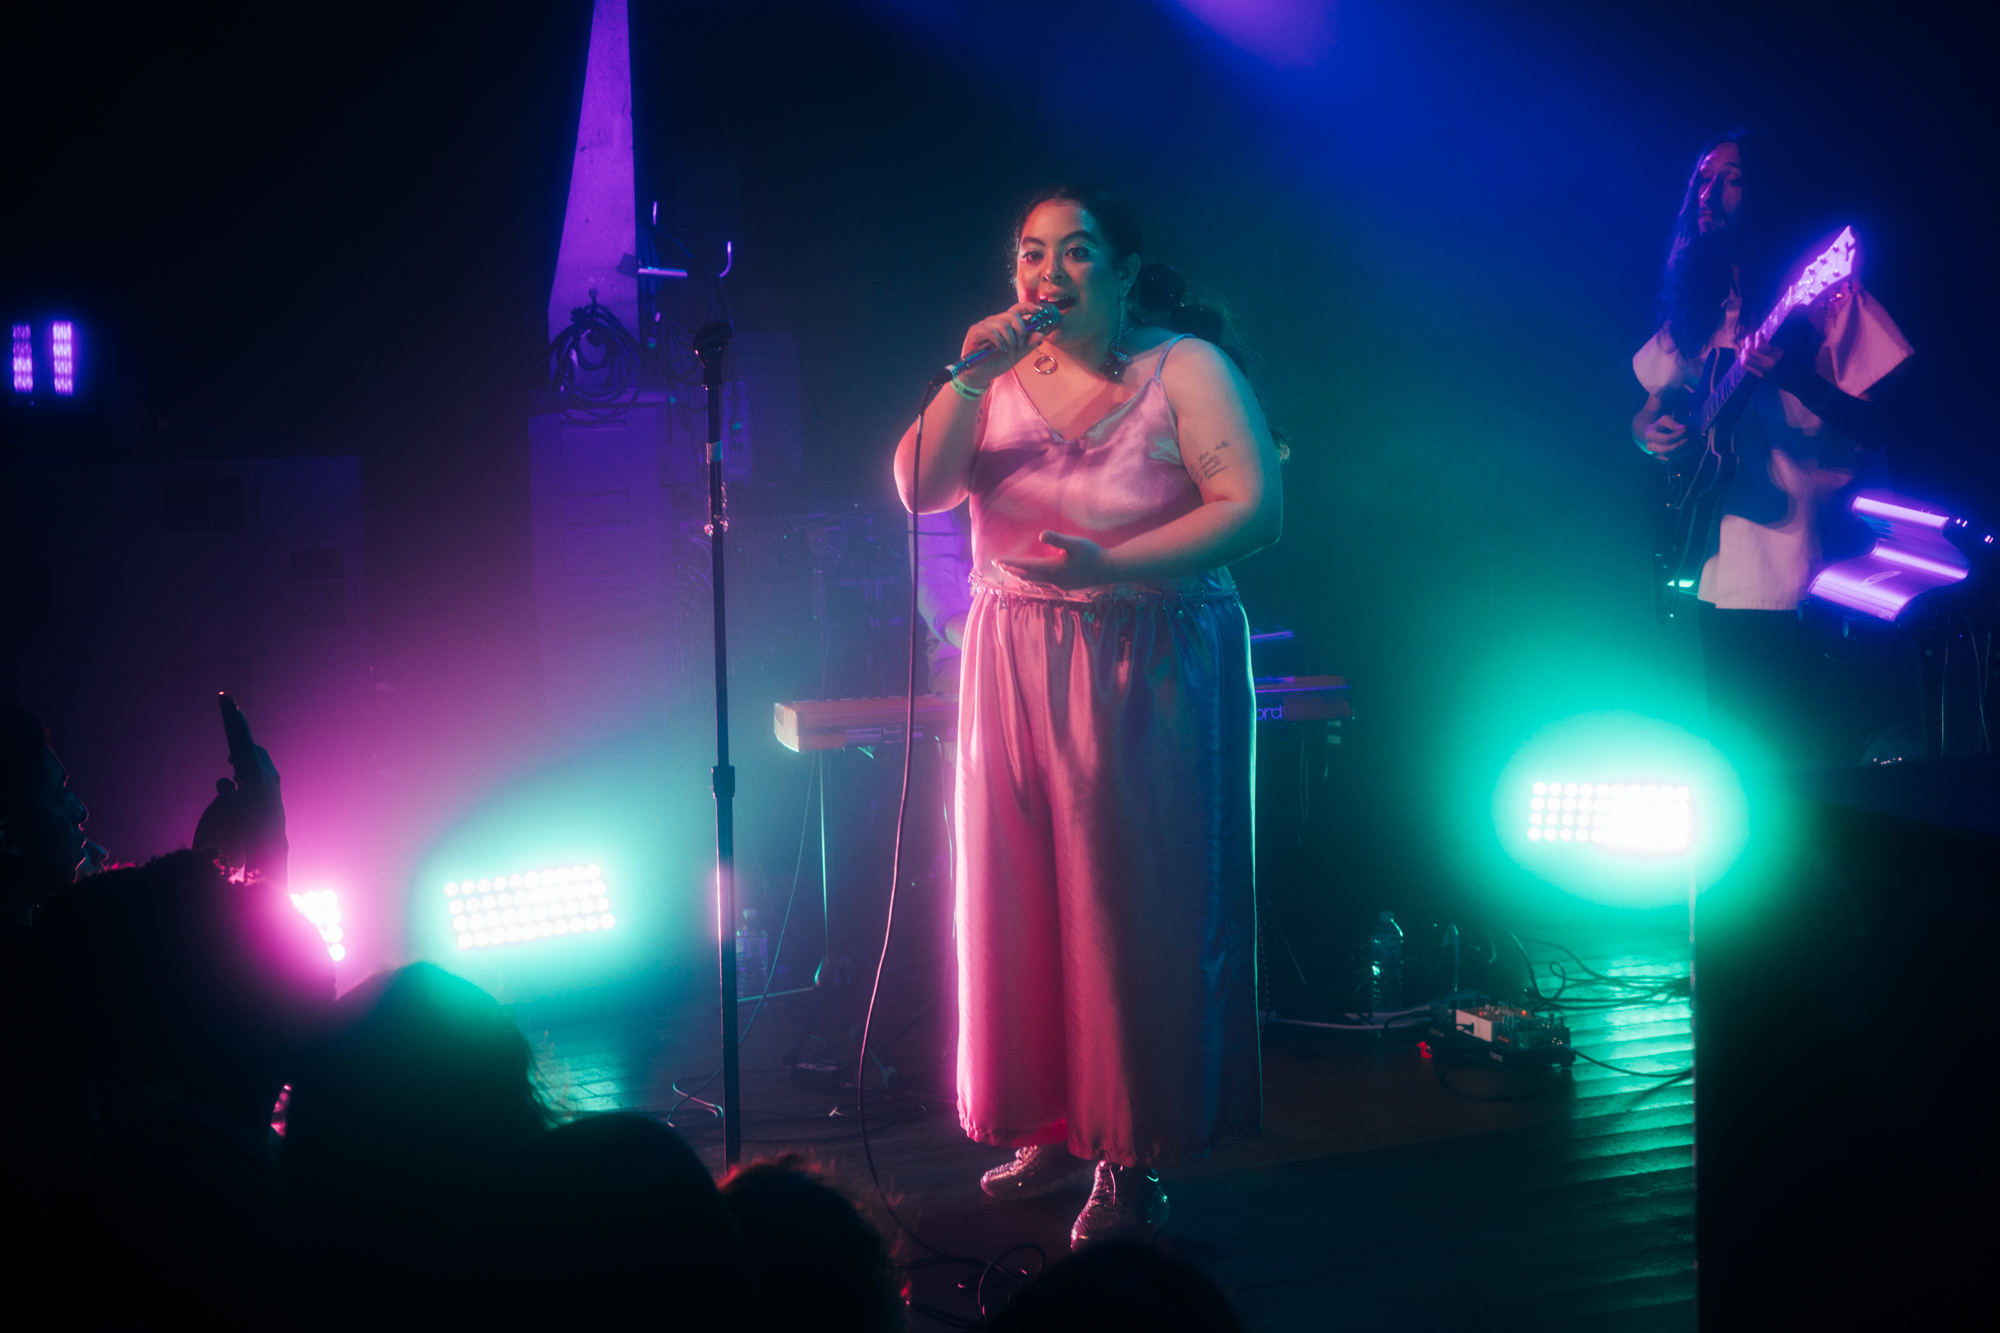 Kaina performing at Lincoln Hall, Chicago 2019 (Photo by Michael Salisbury)